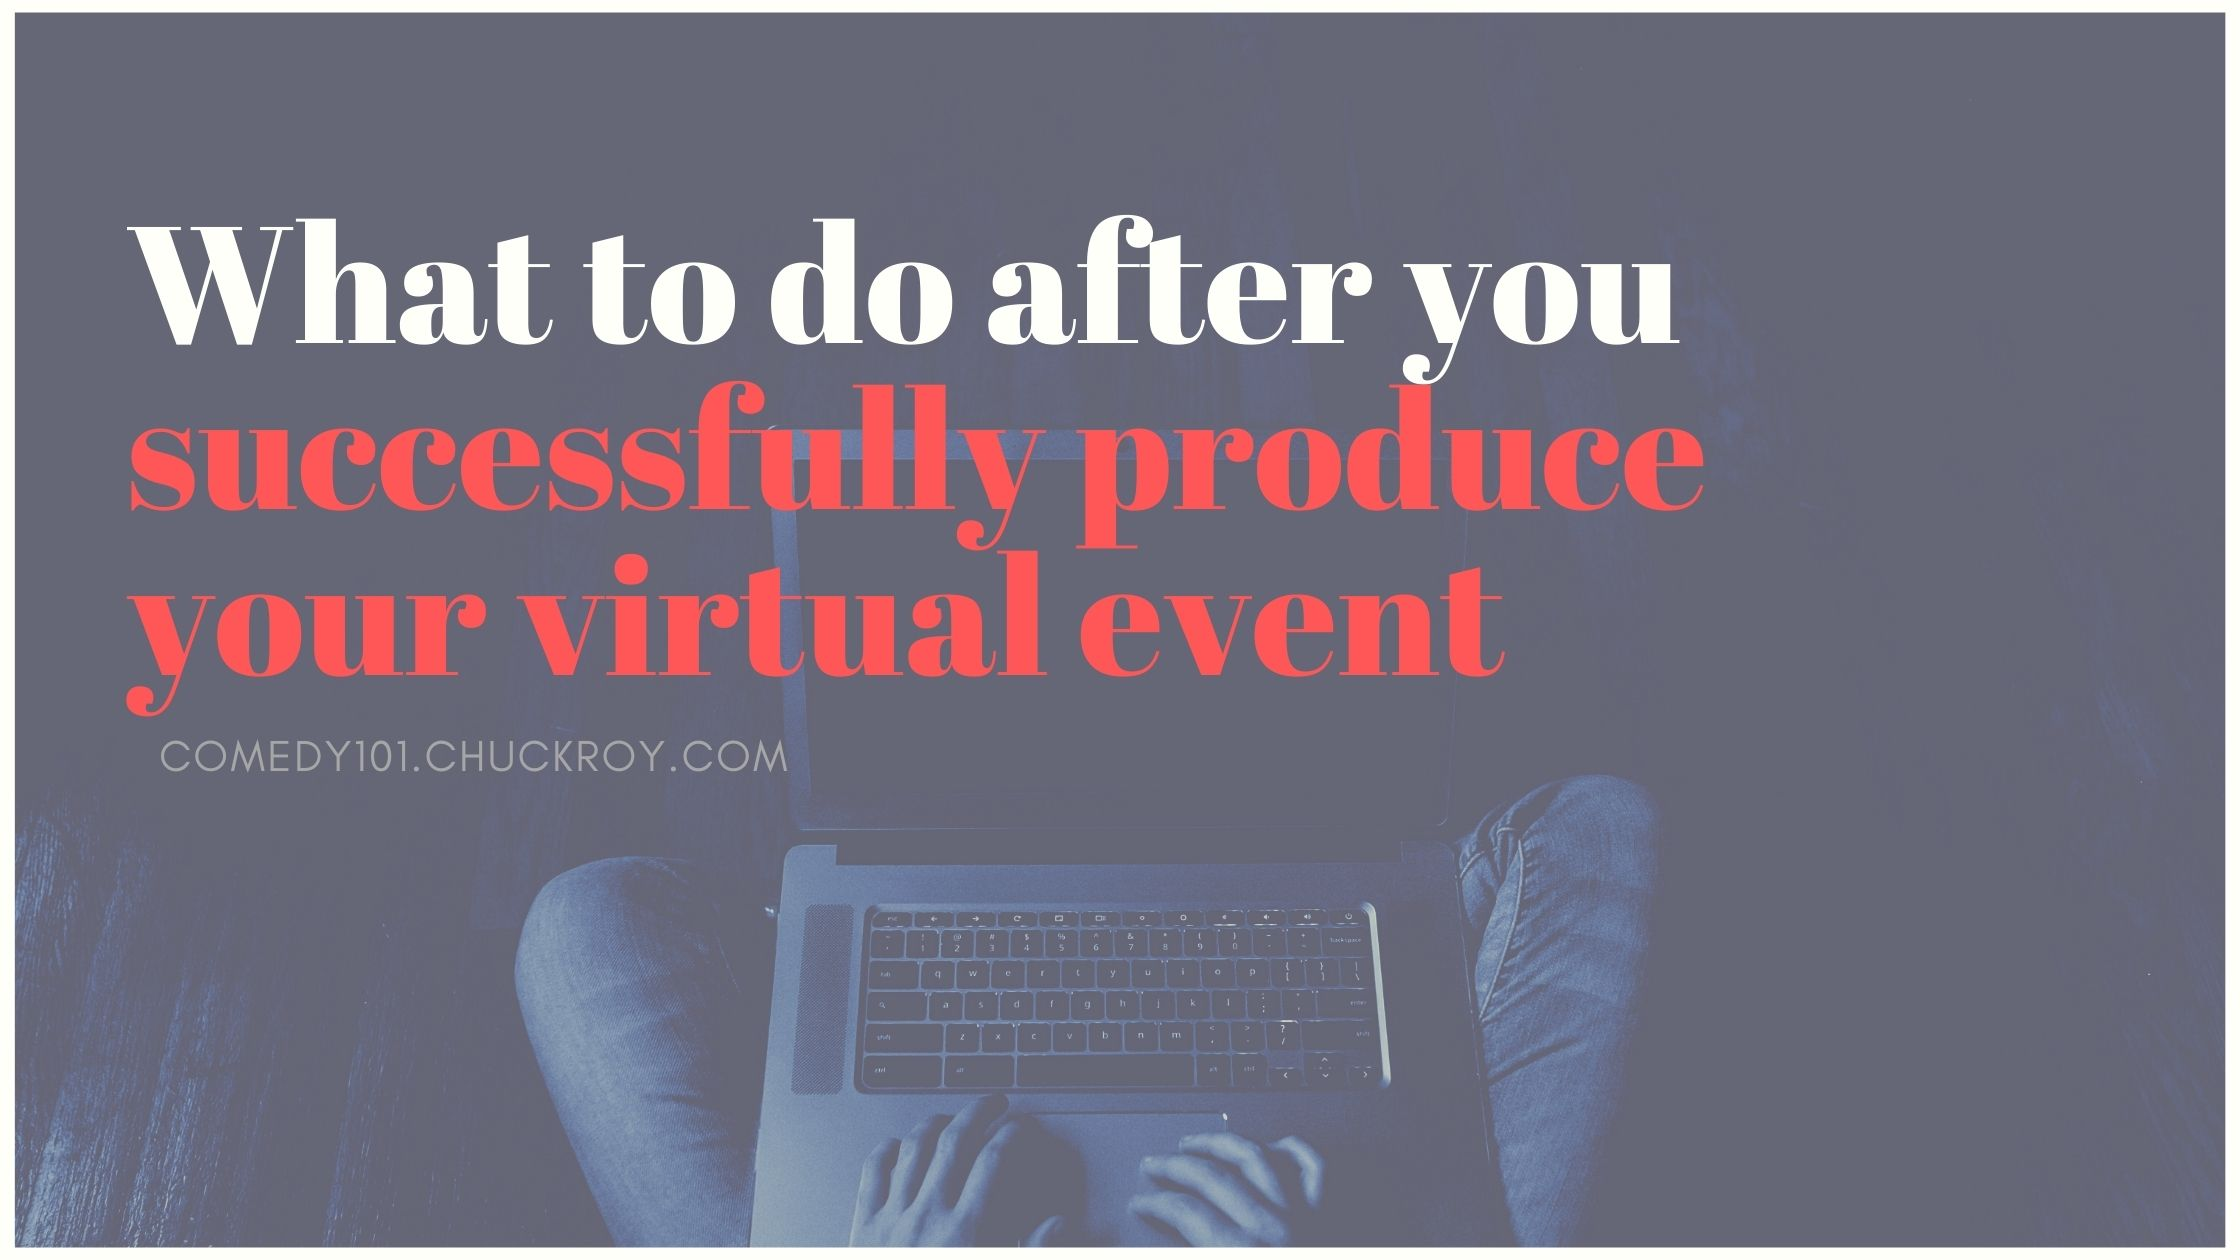 STEP 4 What to do after you successfully produce your virtual event